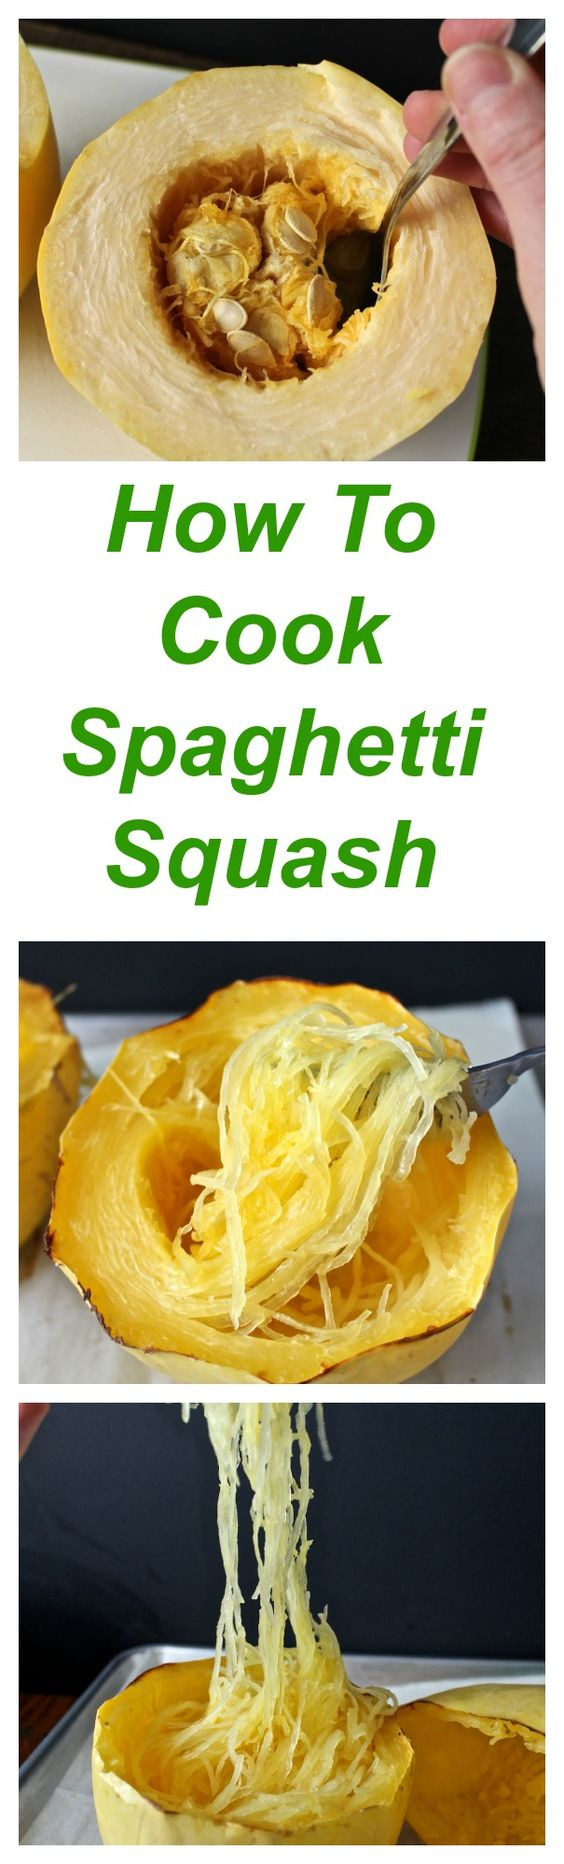 How to cook spaghetti squash recipe how to cook life for What to make with spaghetti squash